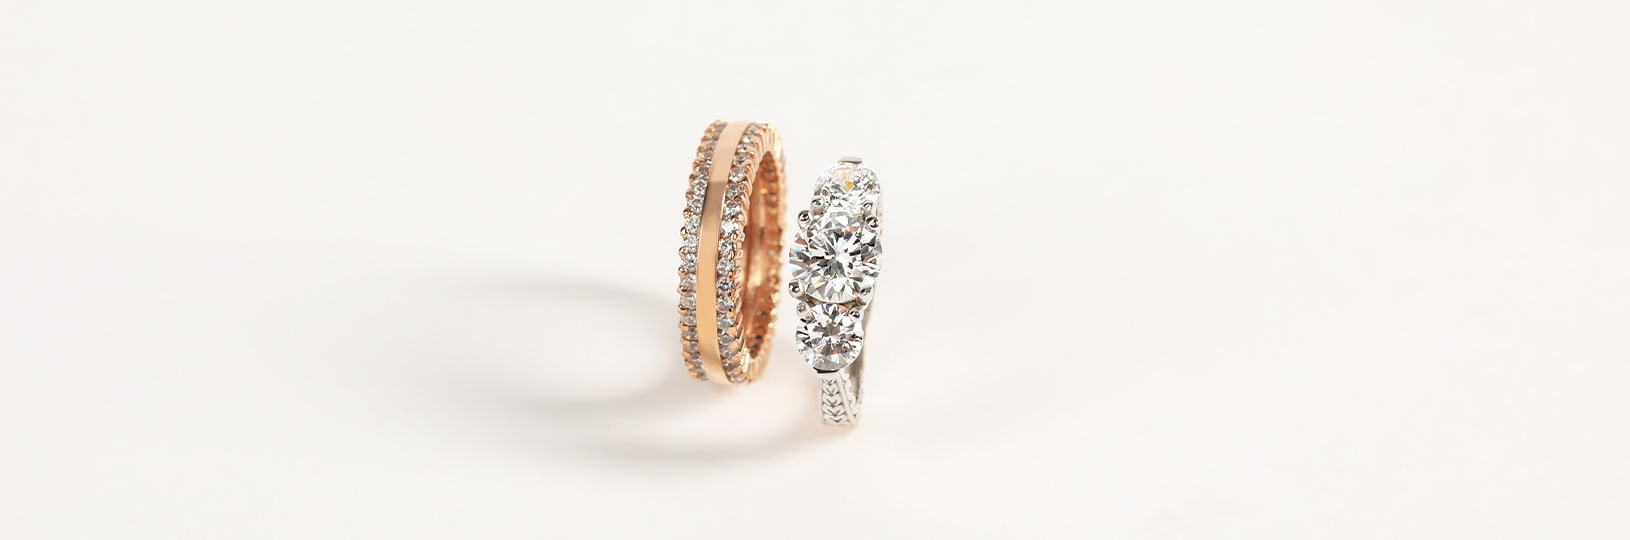 Simulated diamond right hand rings